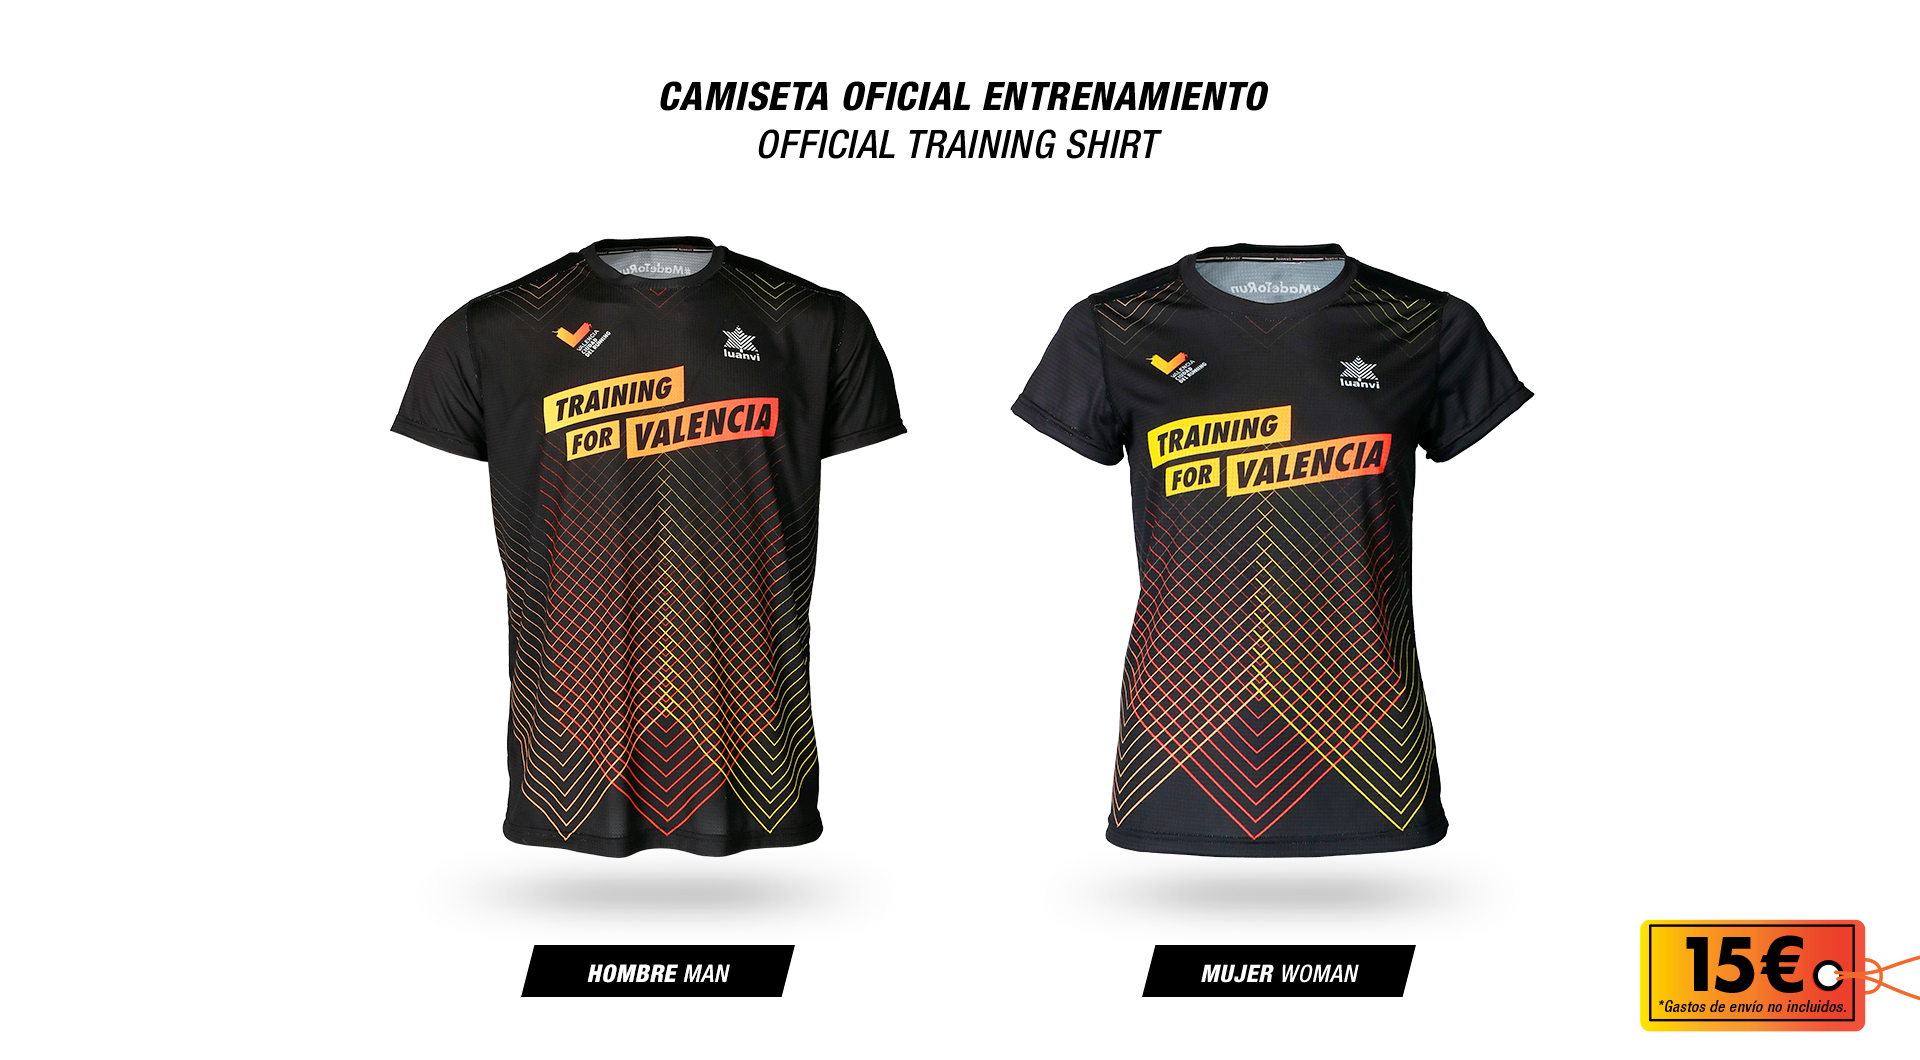 Camiseta Training for Valencia